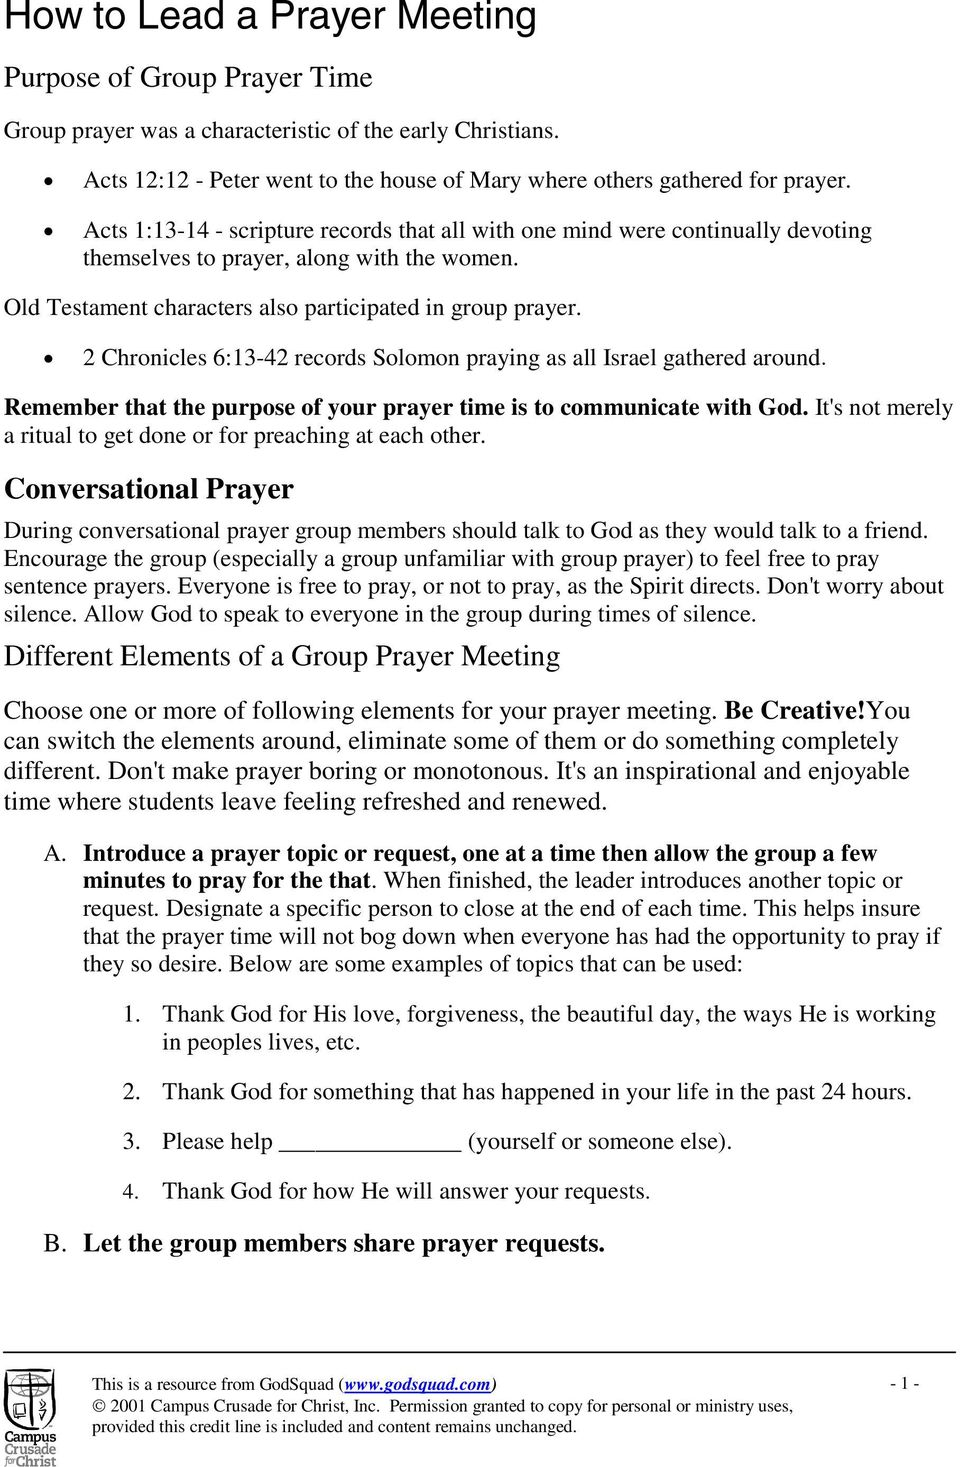 How to Lead a Prayer Meeting - PDF